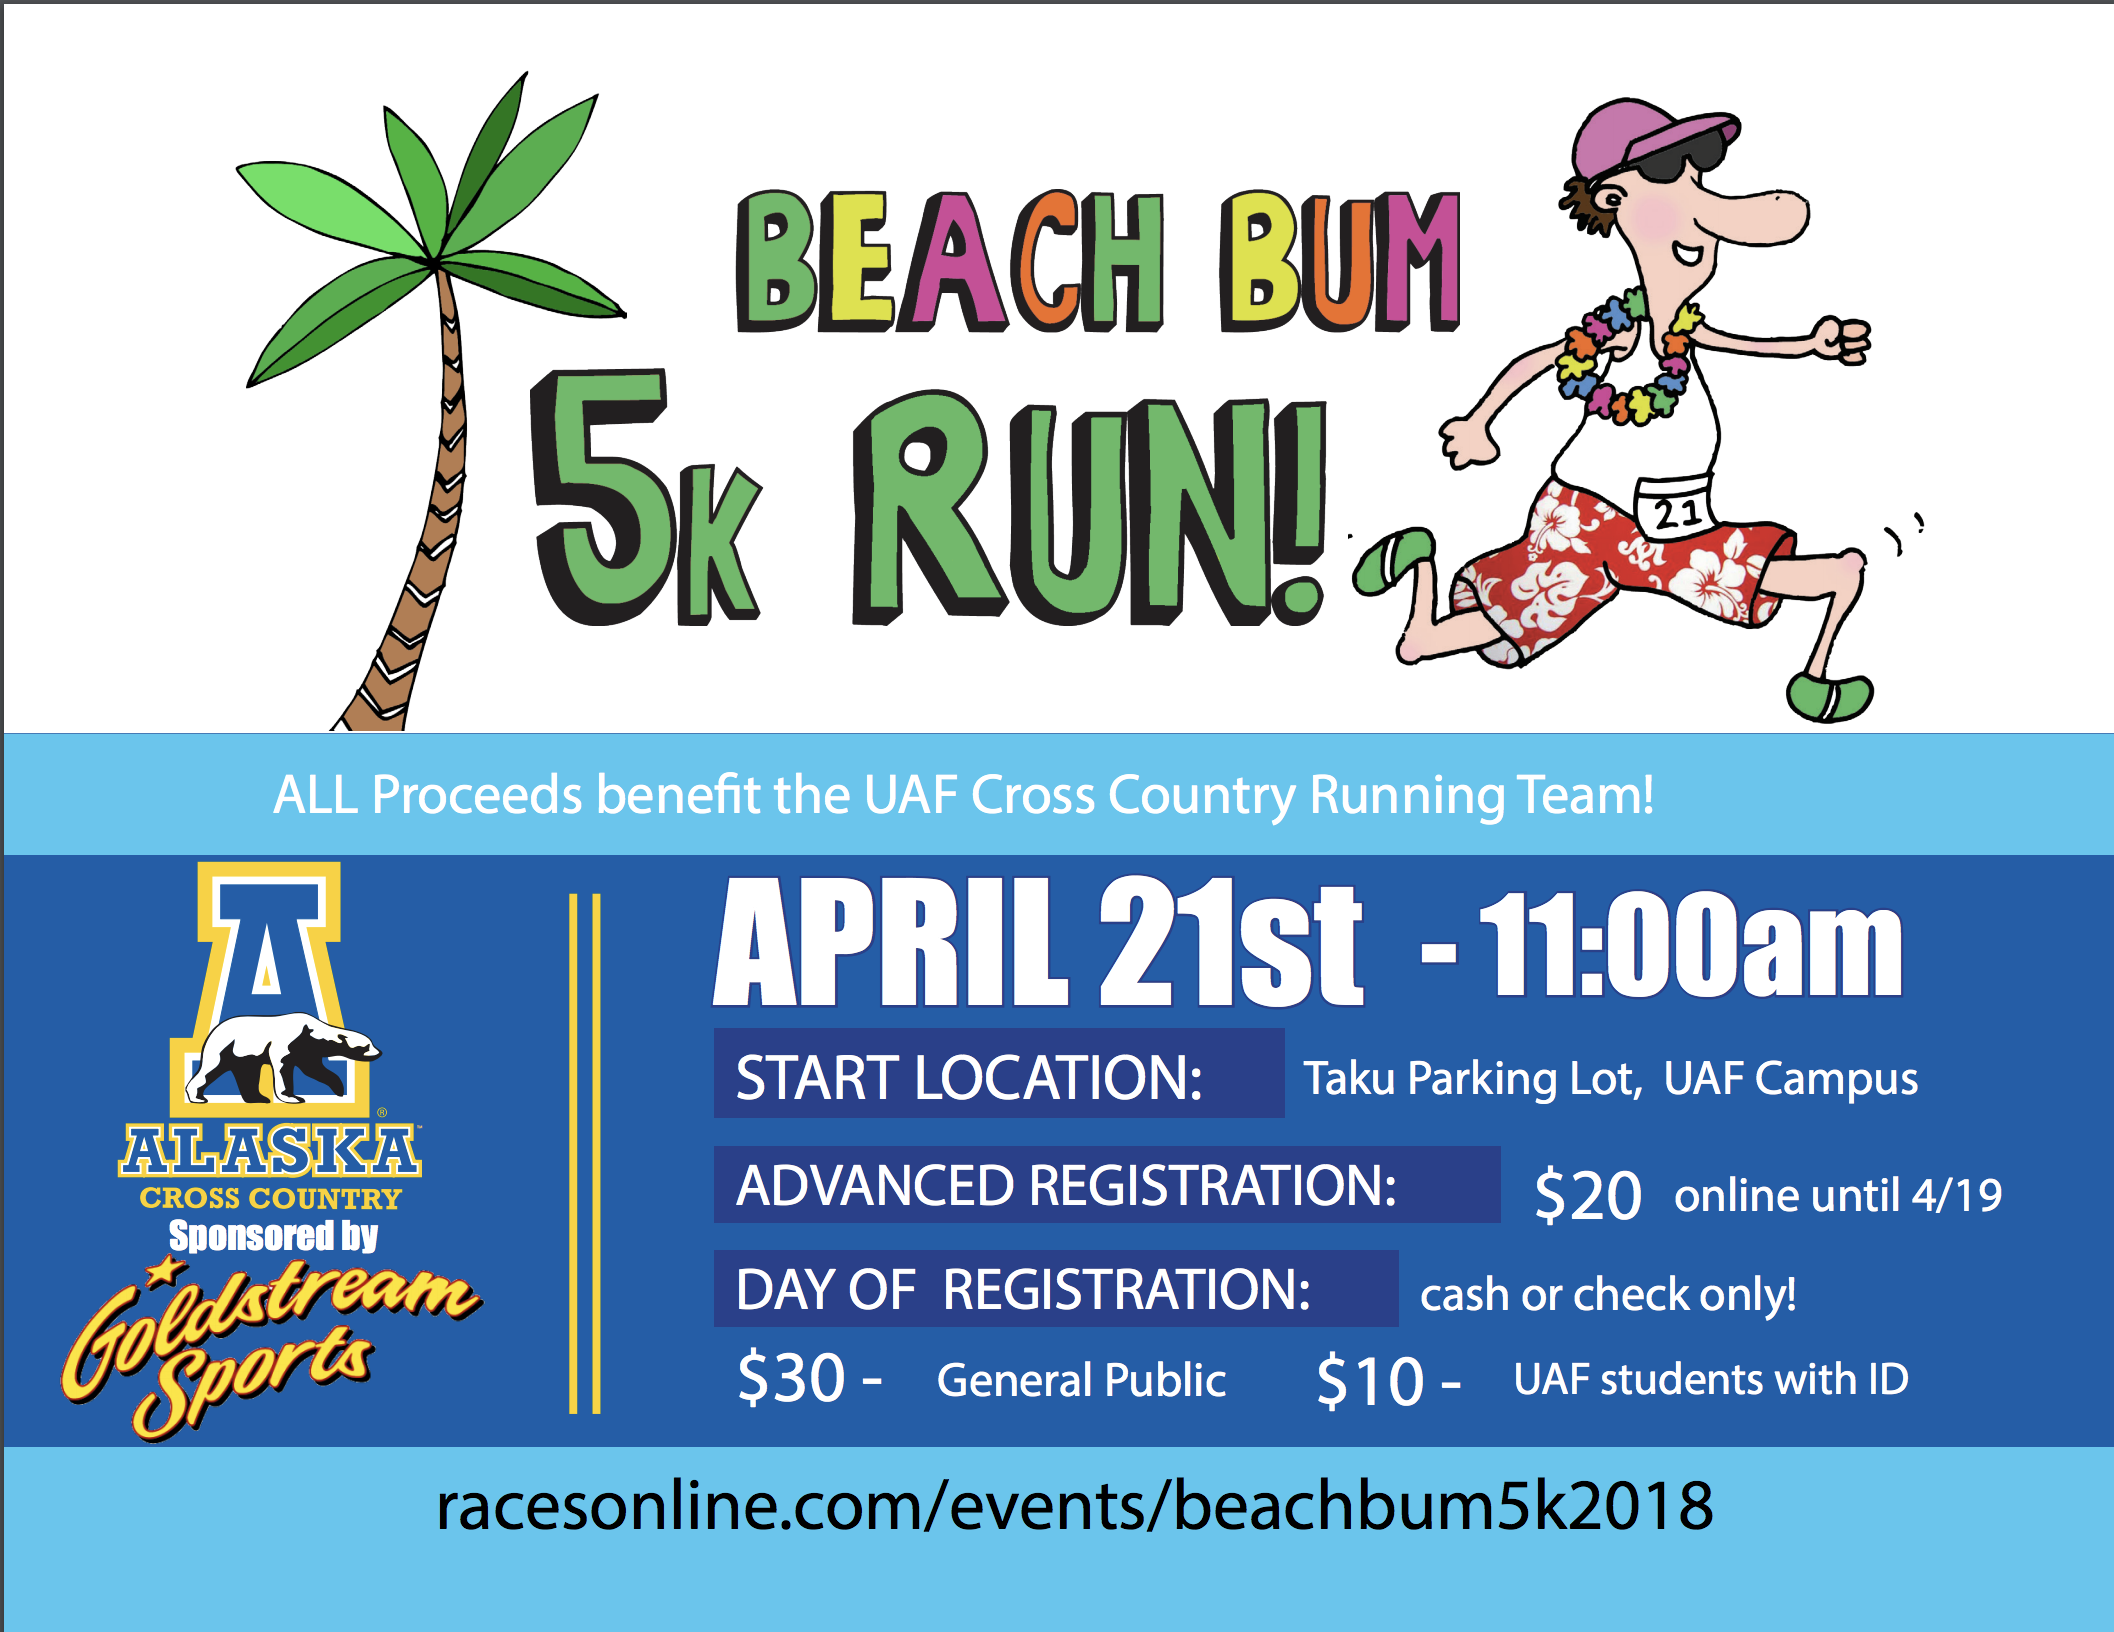 Beach Bum 5K Run